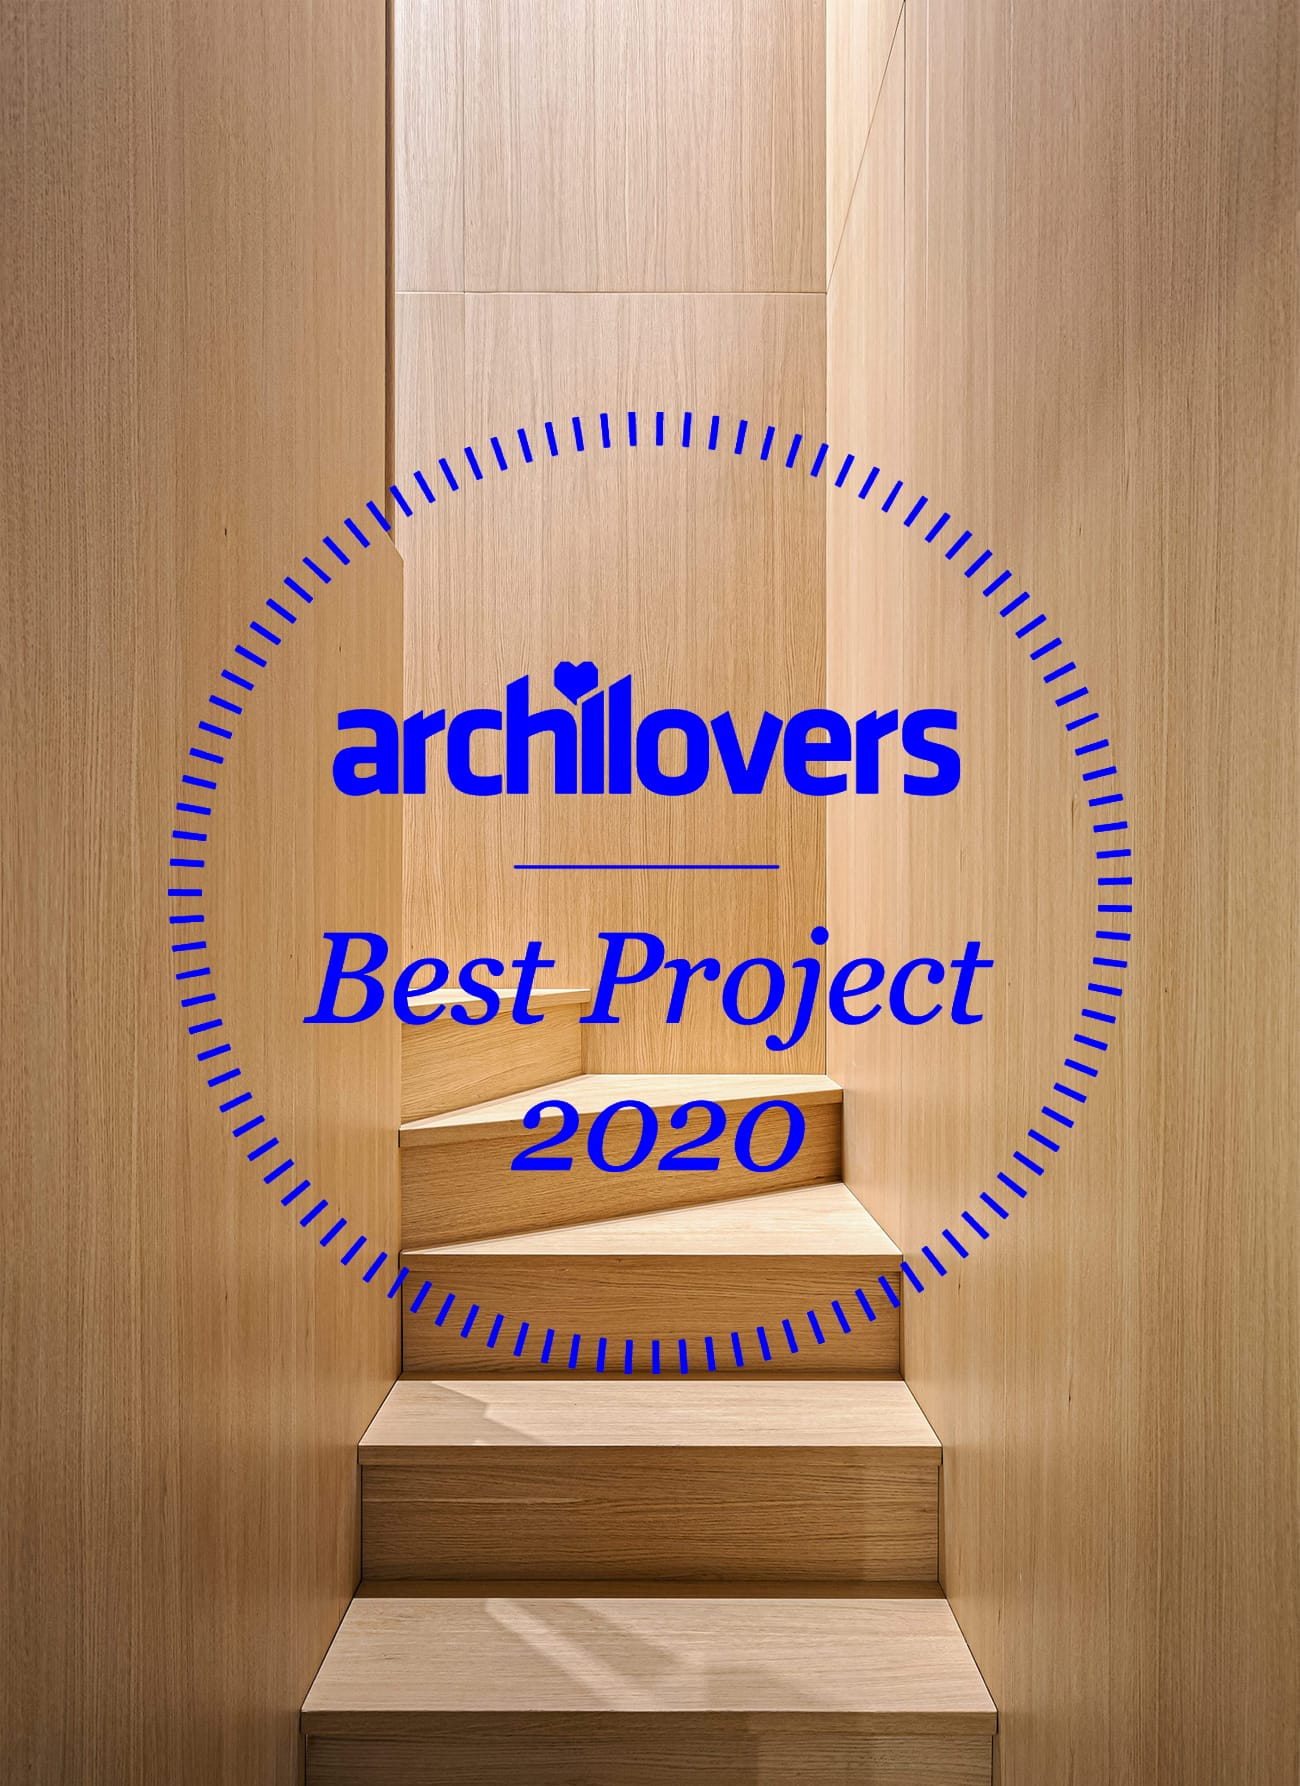 journal_archilovers2020_1